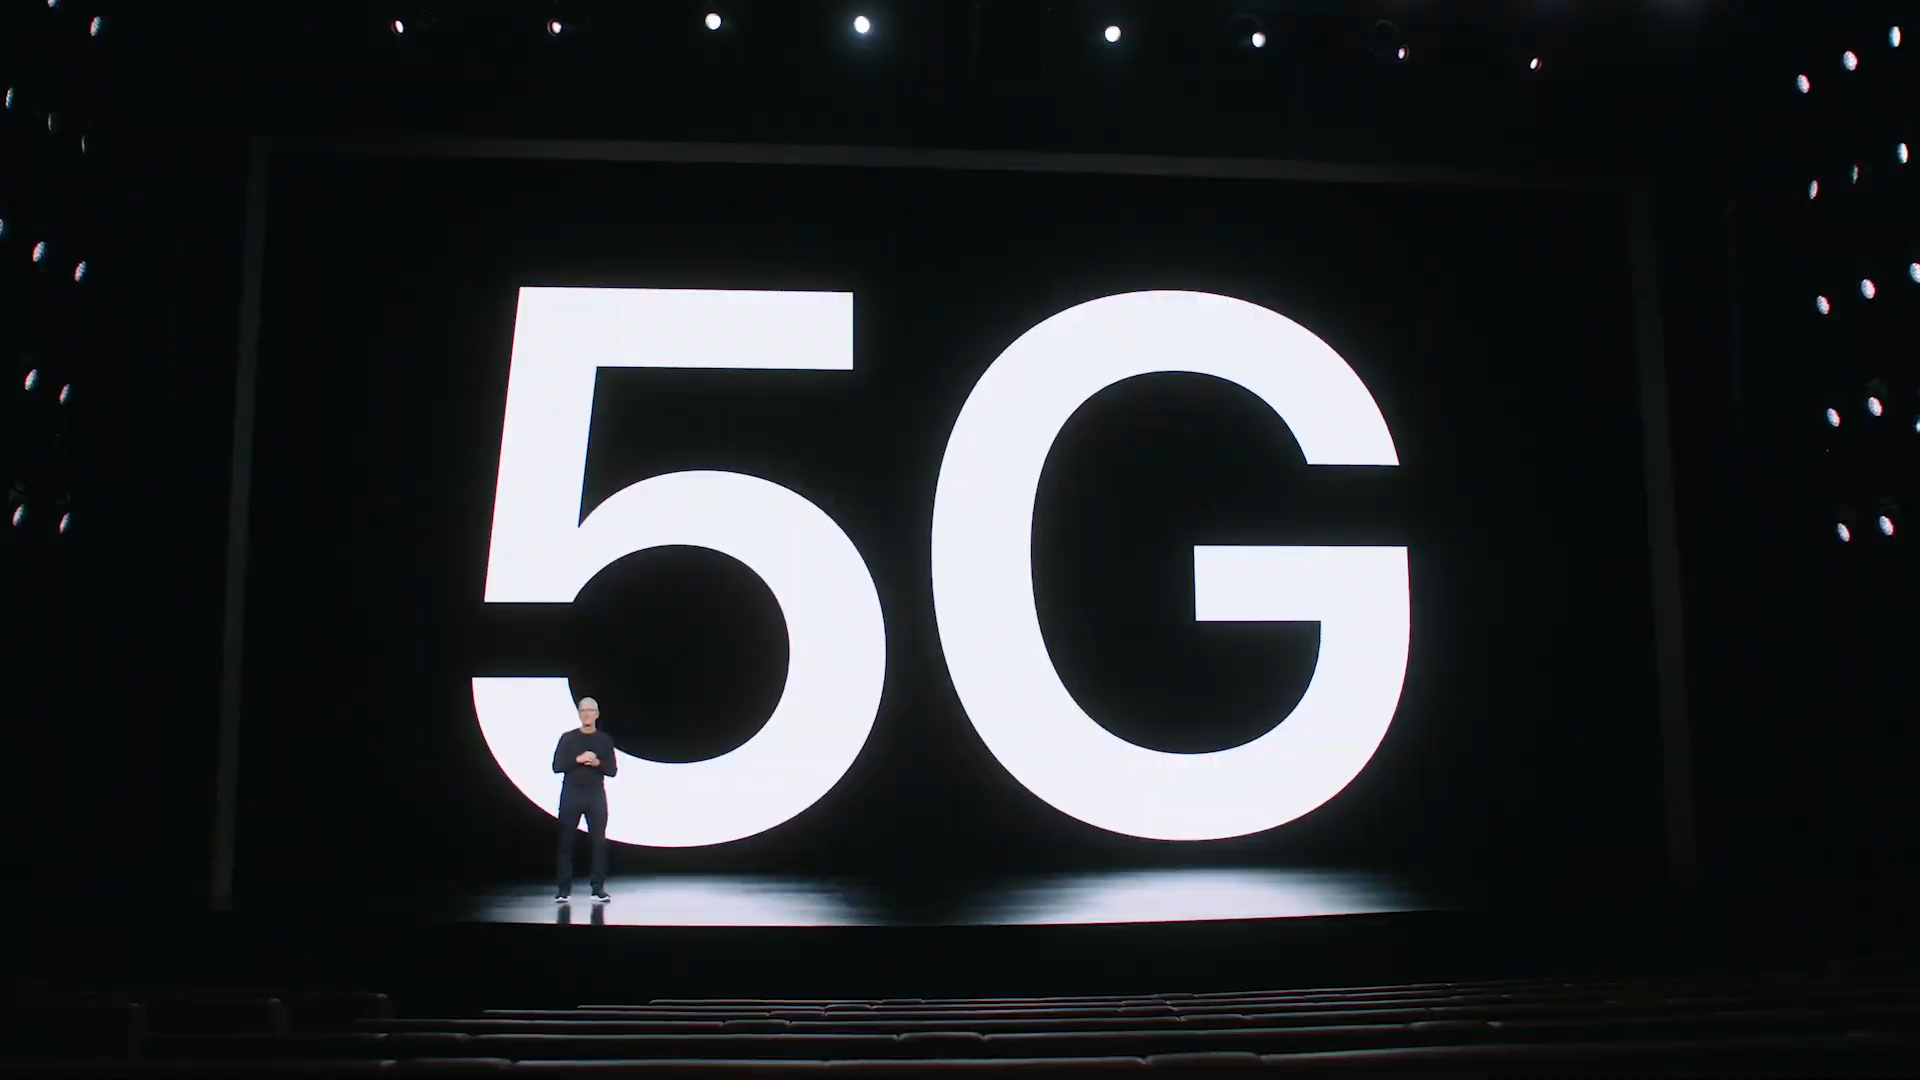 iPhone 12 doen't support 5g in dual SIM mode